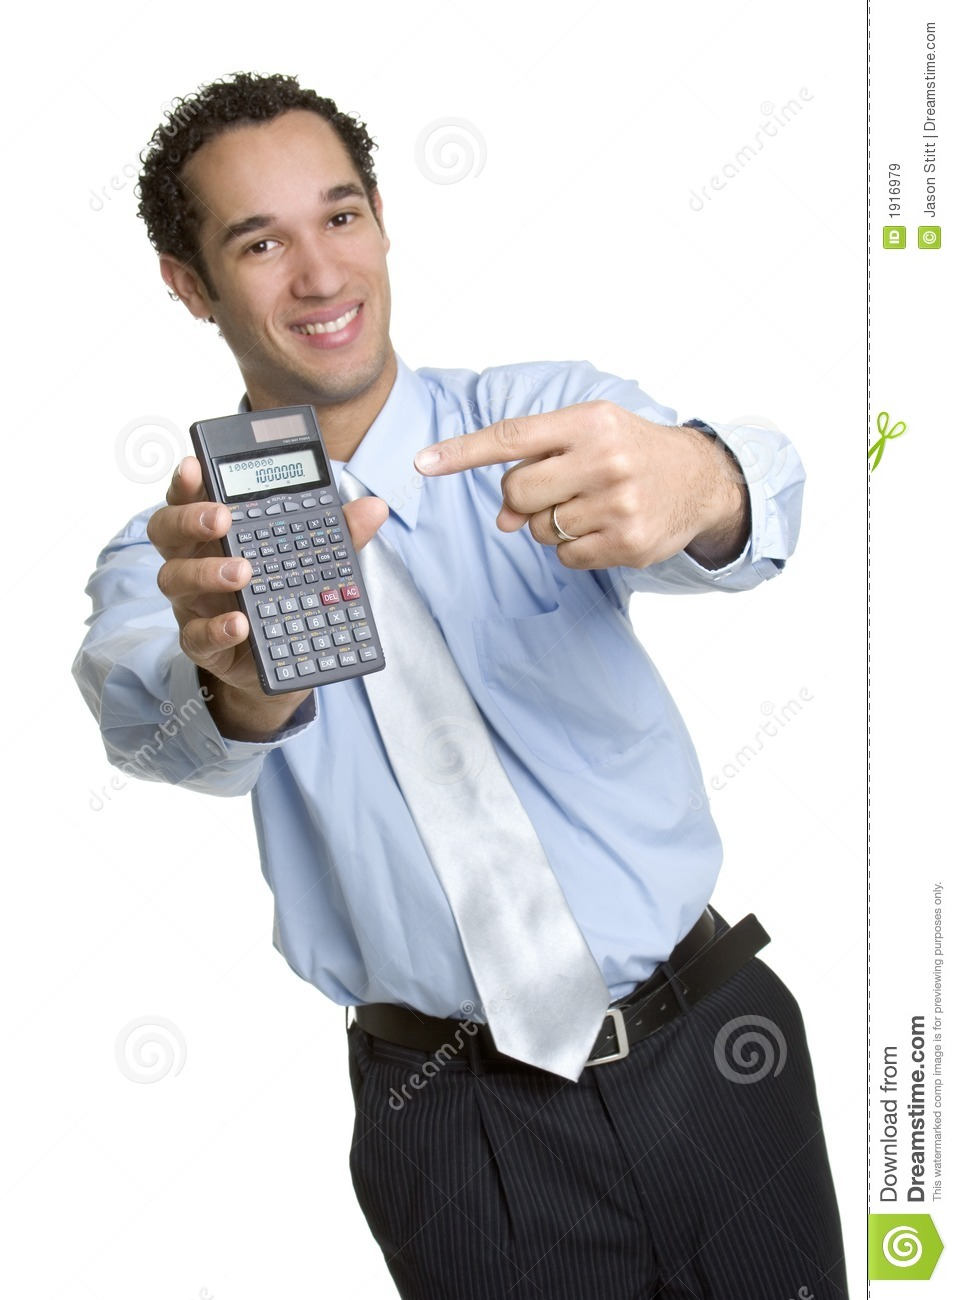 business calculator man stock image  image of smile